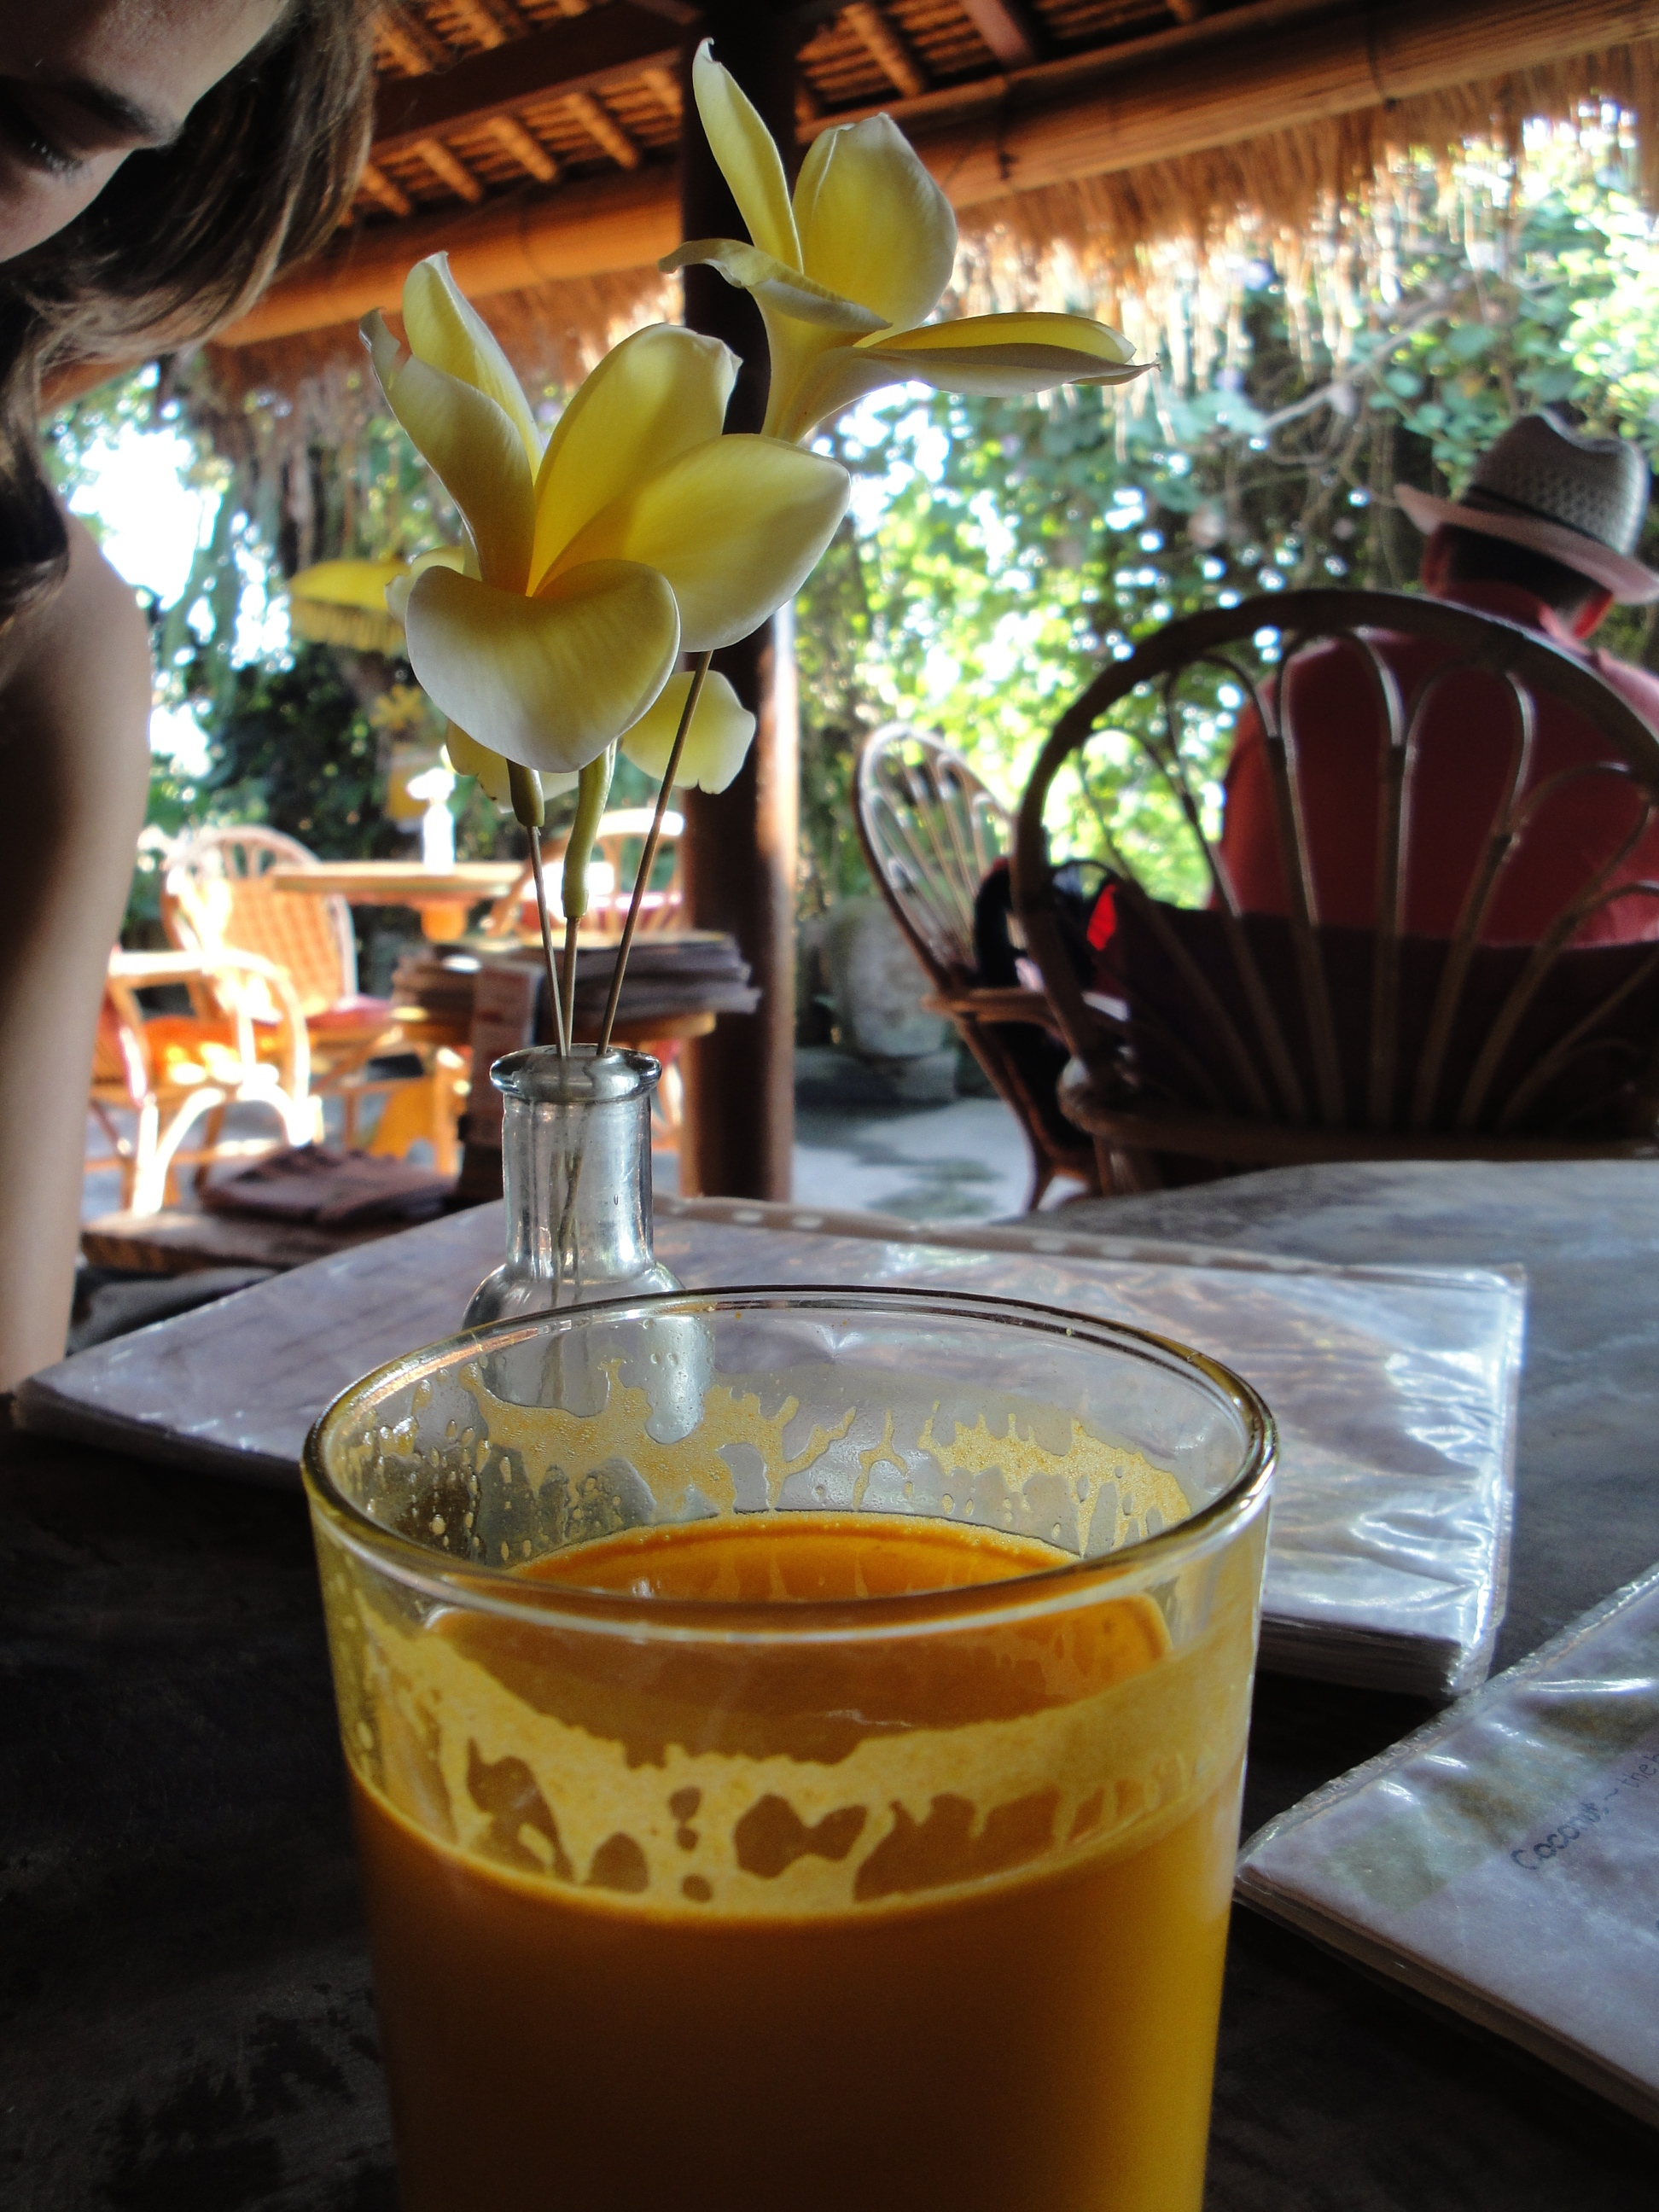 Turmeric Medicinal: Fresh turmeric, coconut water, lime. Bali appears to grow this stuff prolifically.